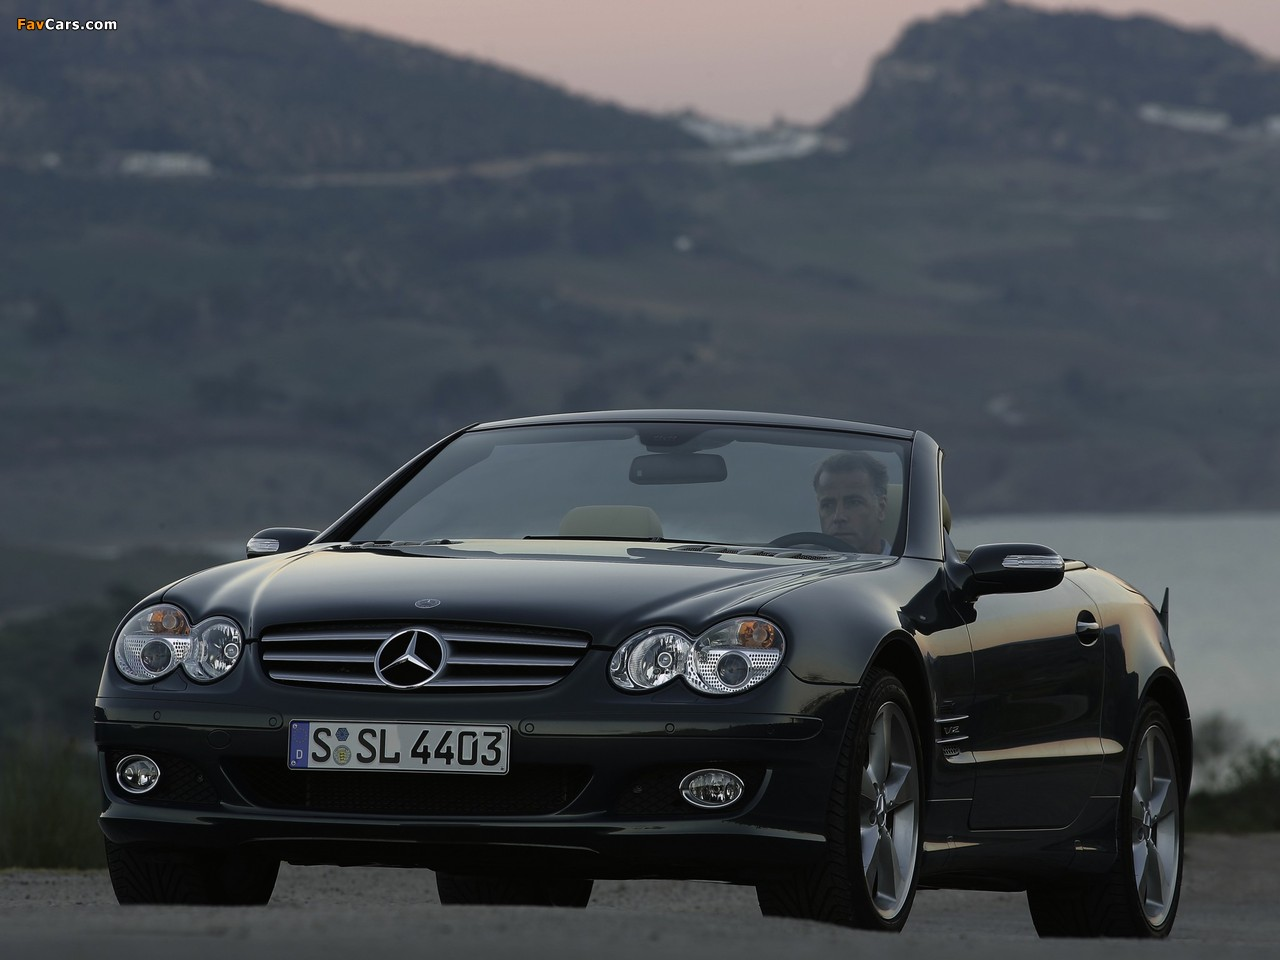 Mercedes benz sl 600 r230 2005 08 wallpapers 1280x960 for Mercedes benz sl r230